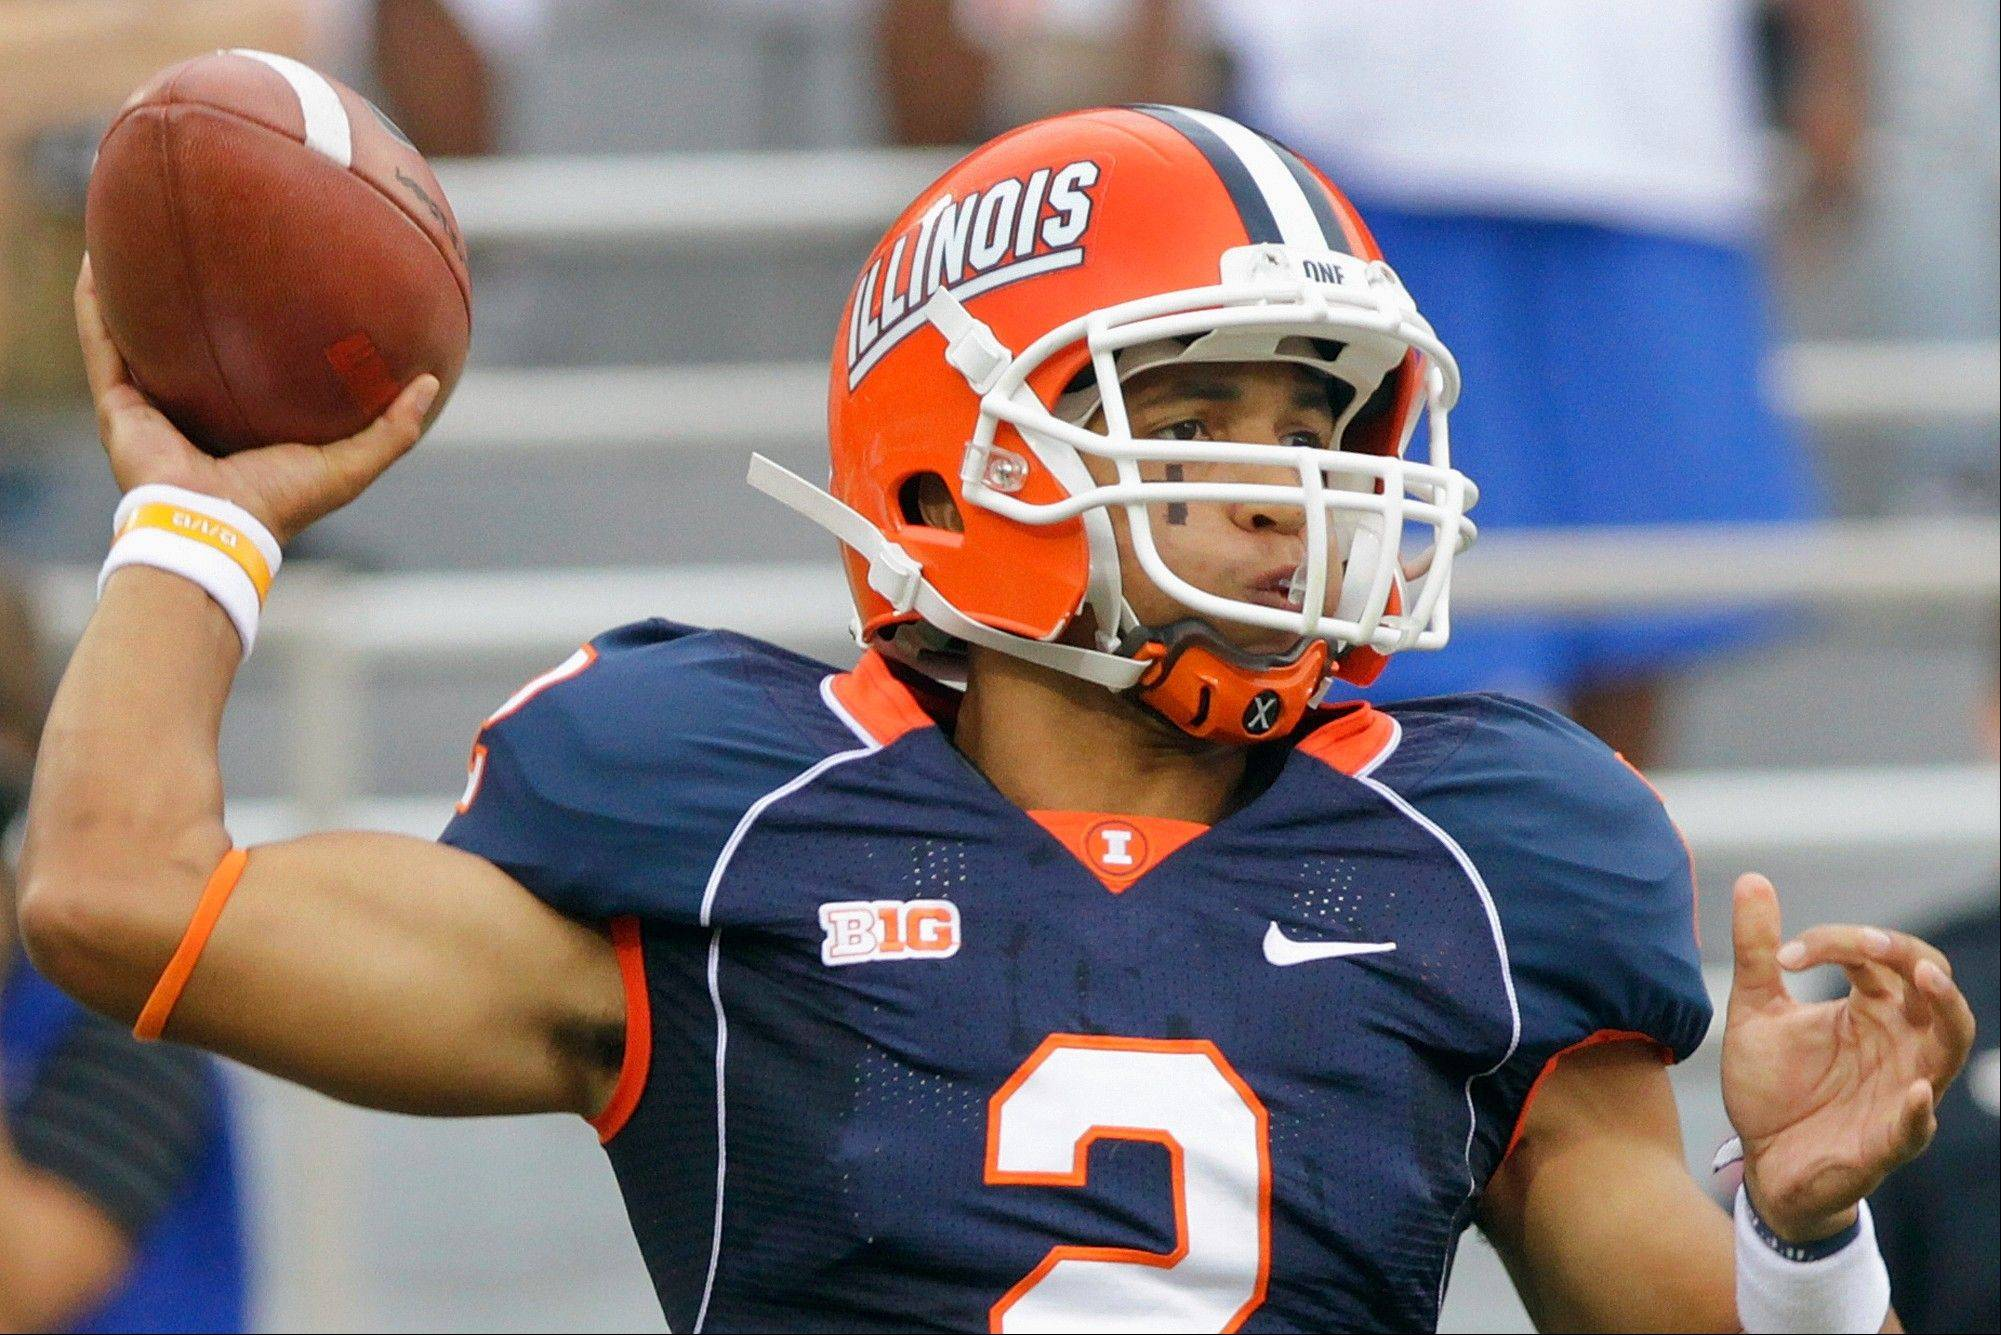 Illinois quarterback Nathan Scheelhaase passes against Western Michigan earlier this season. Head coach Tim Beckman says Scheelhaase is close to 100 percent healthy after being hobbled by an ankle sprain since the opening week of the season.